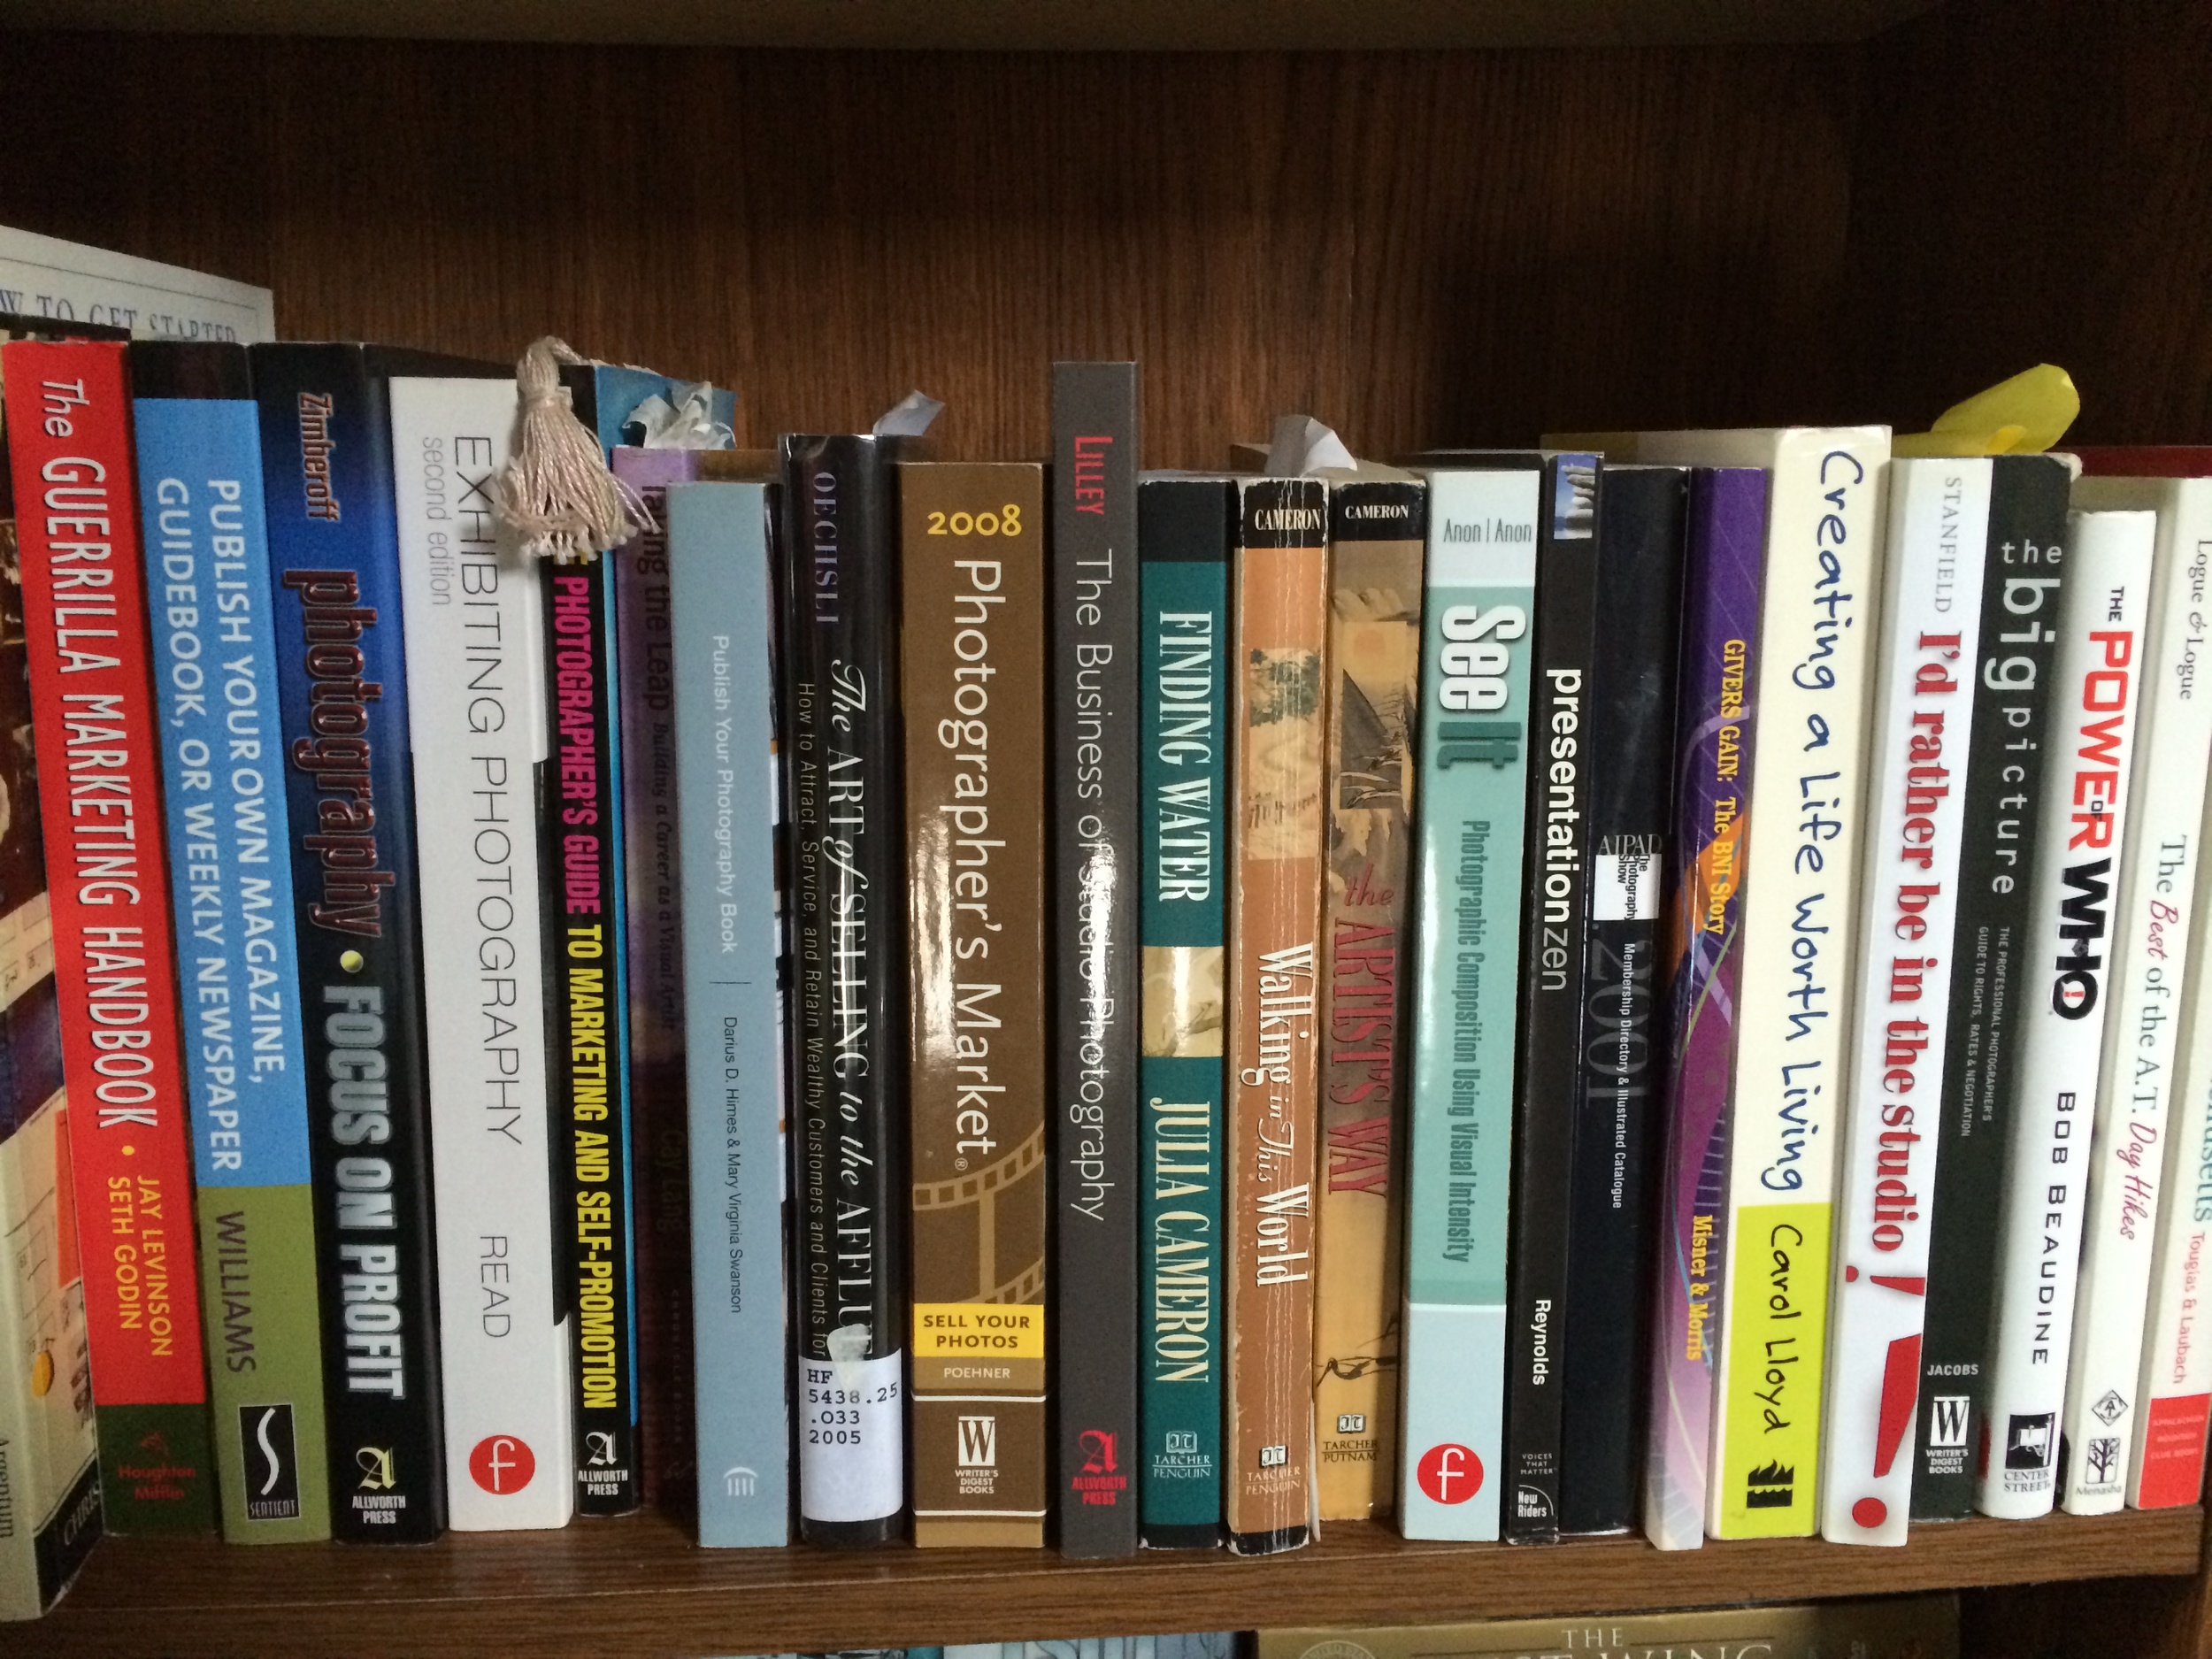 One of the bookshelves with Photo, Art, and Marketing Books